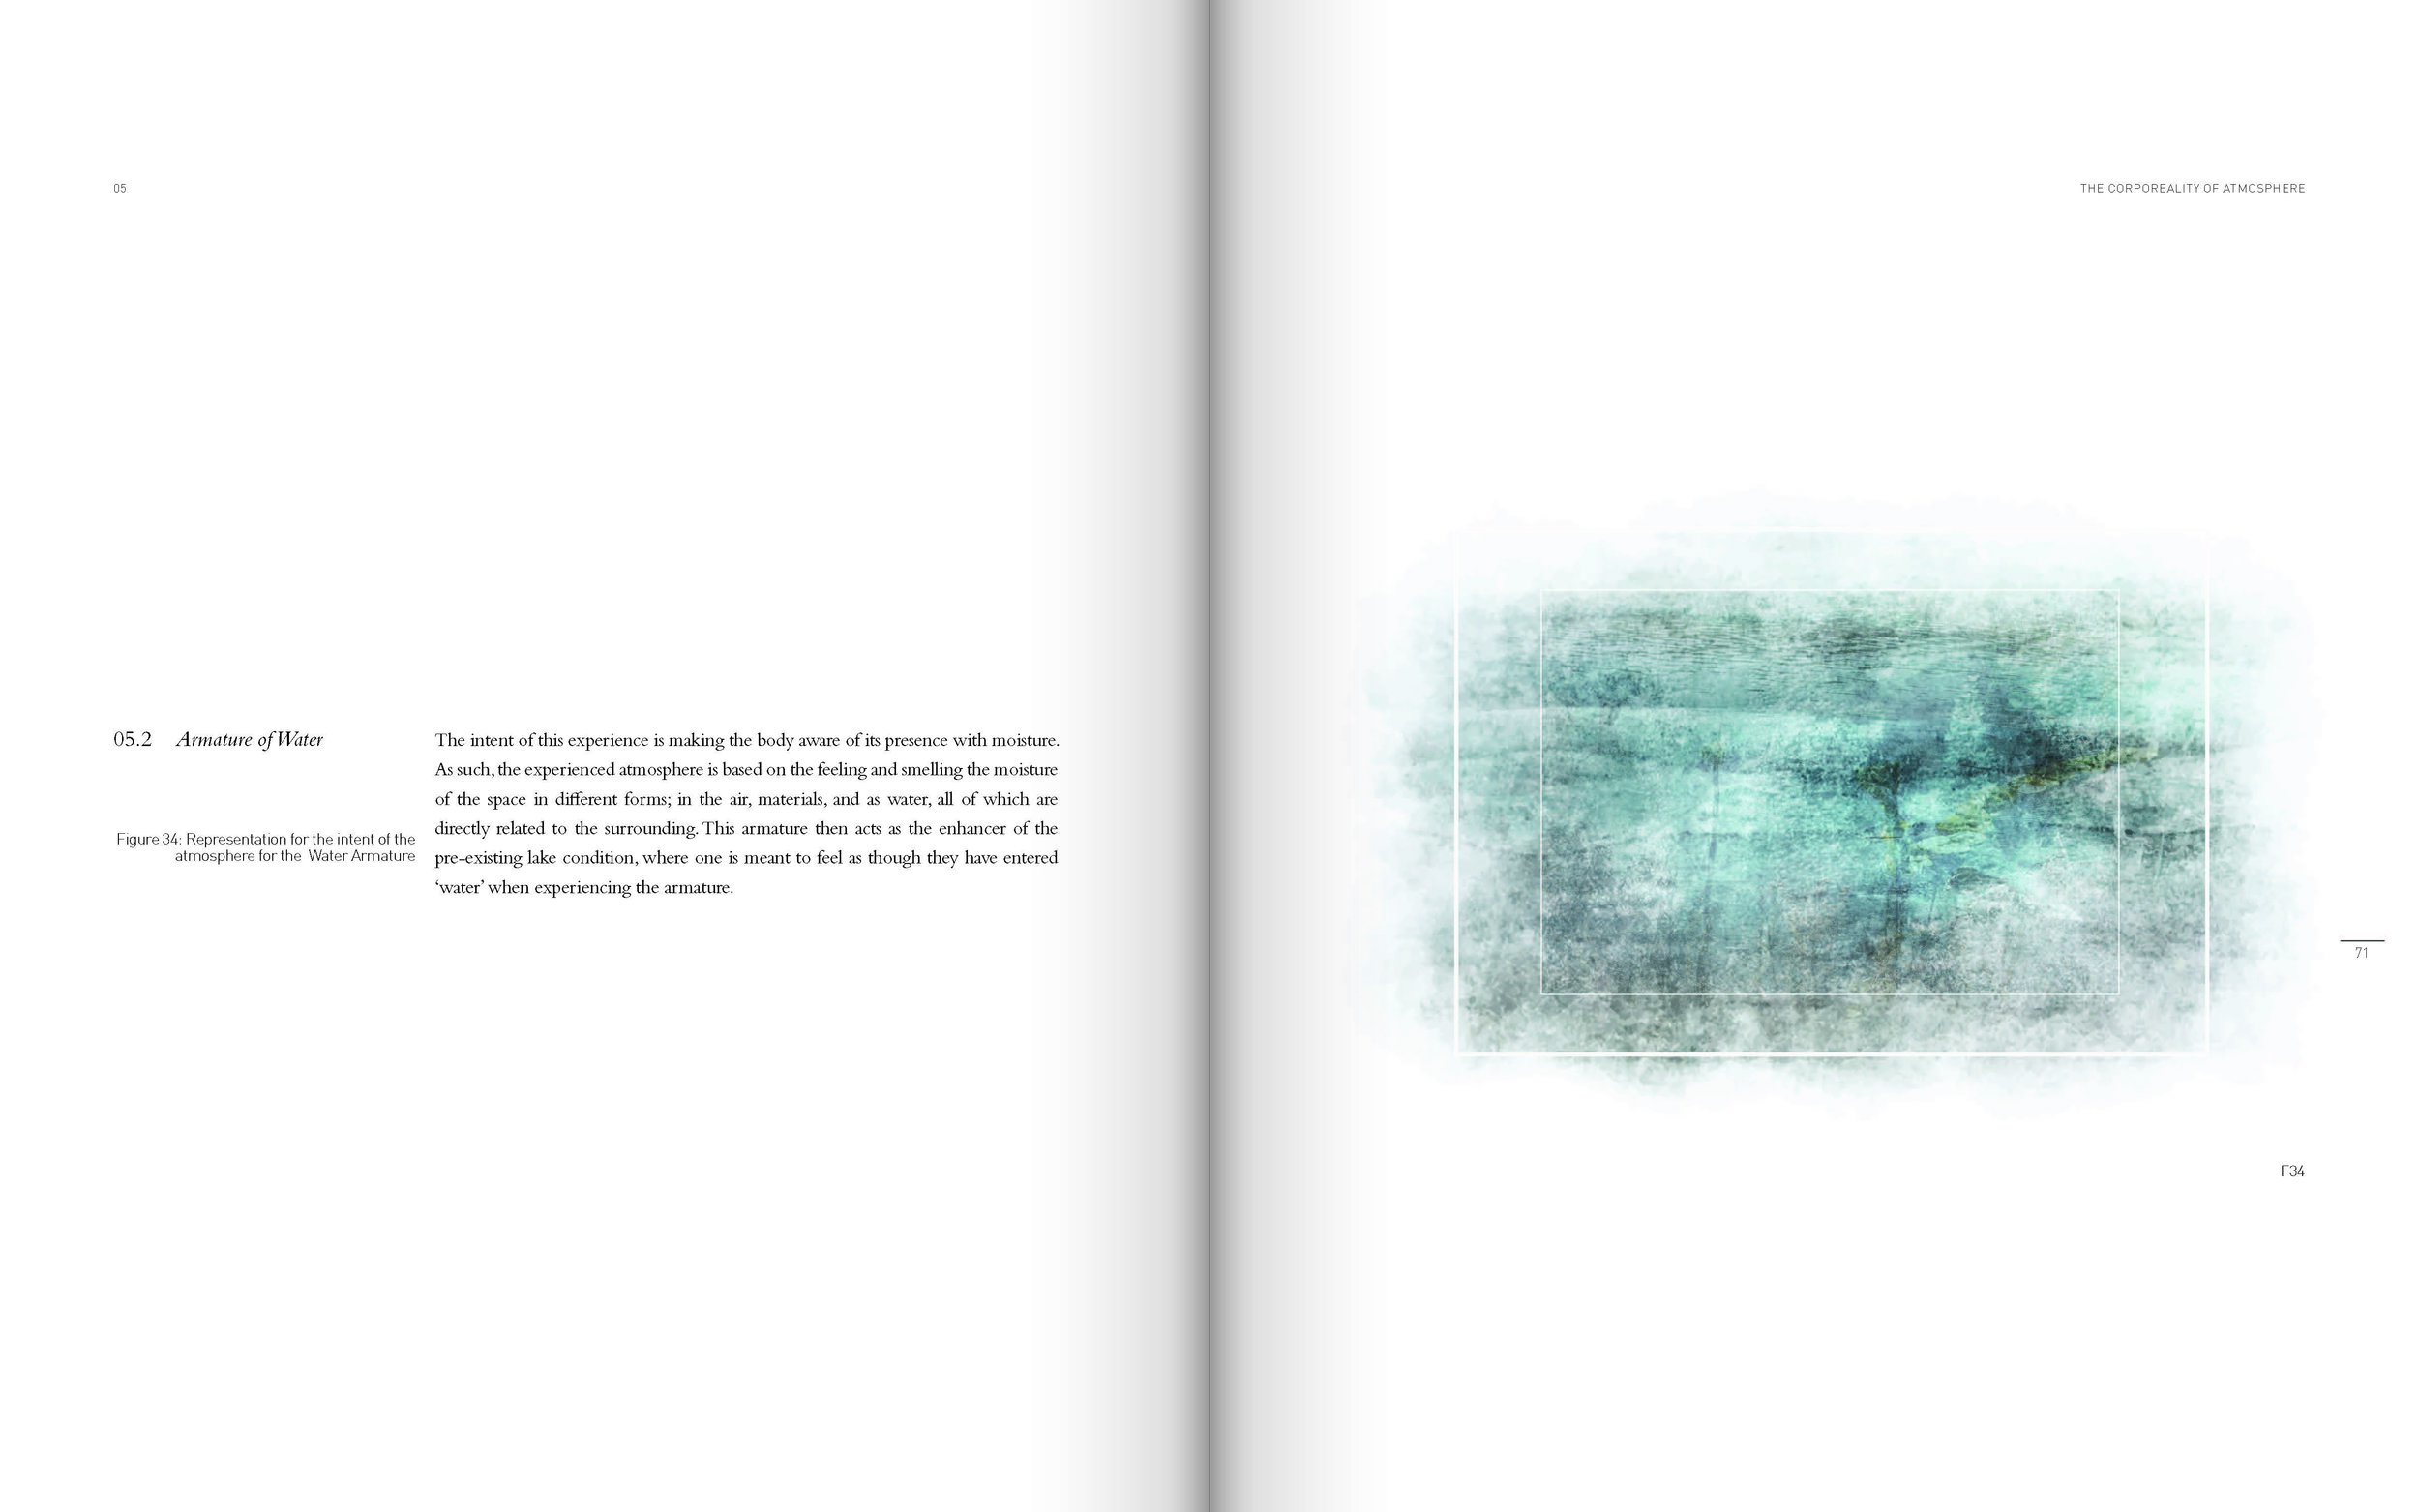 On The Corporeality of Atmosphere_J Walker_Paul Spreads w seam_Page_16.jpg